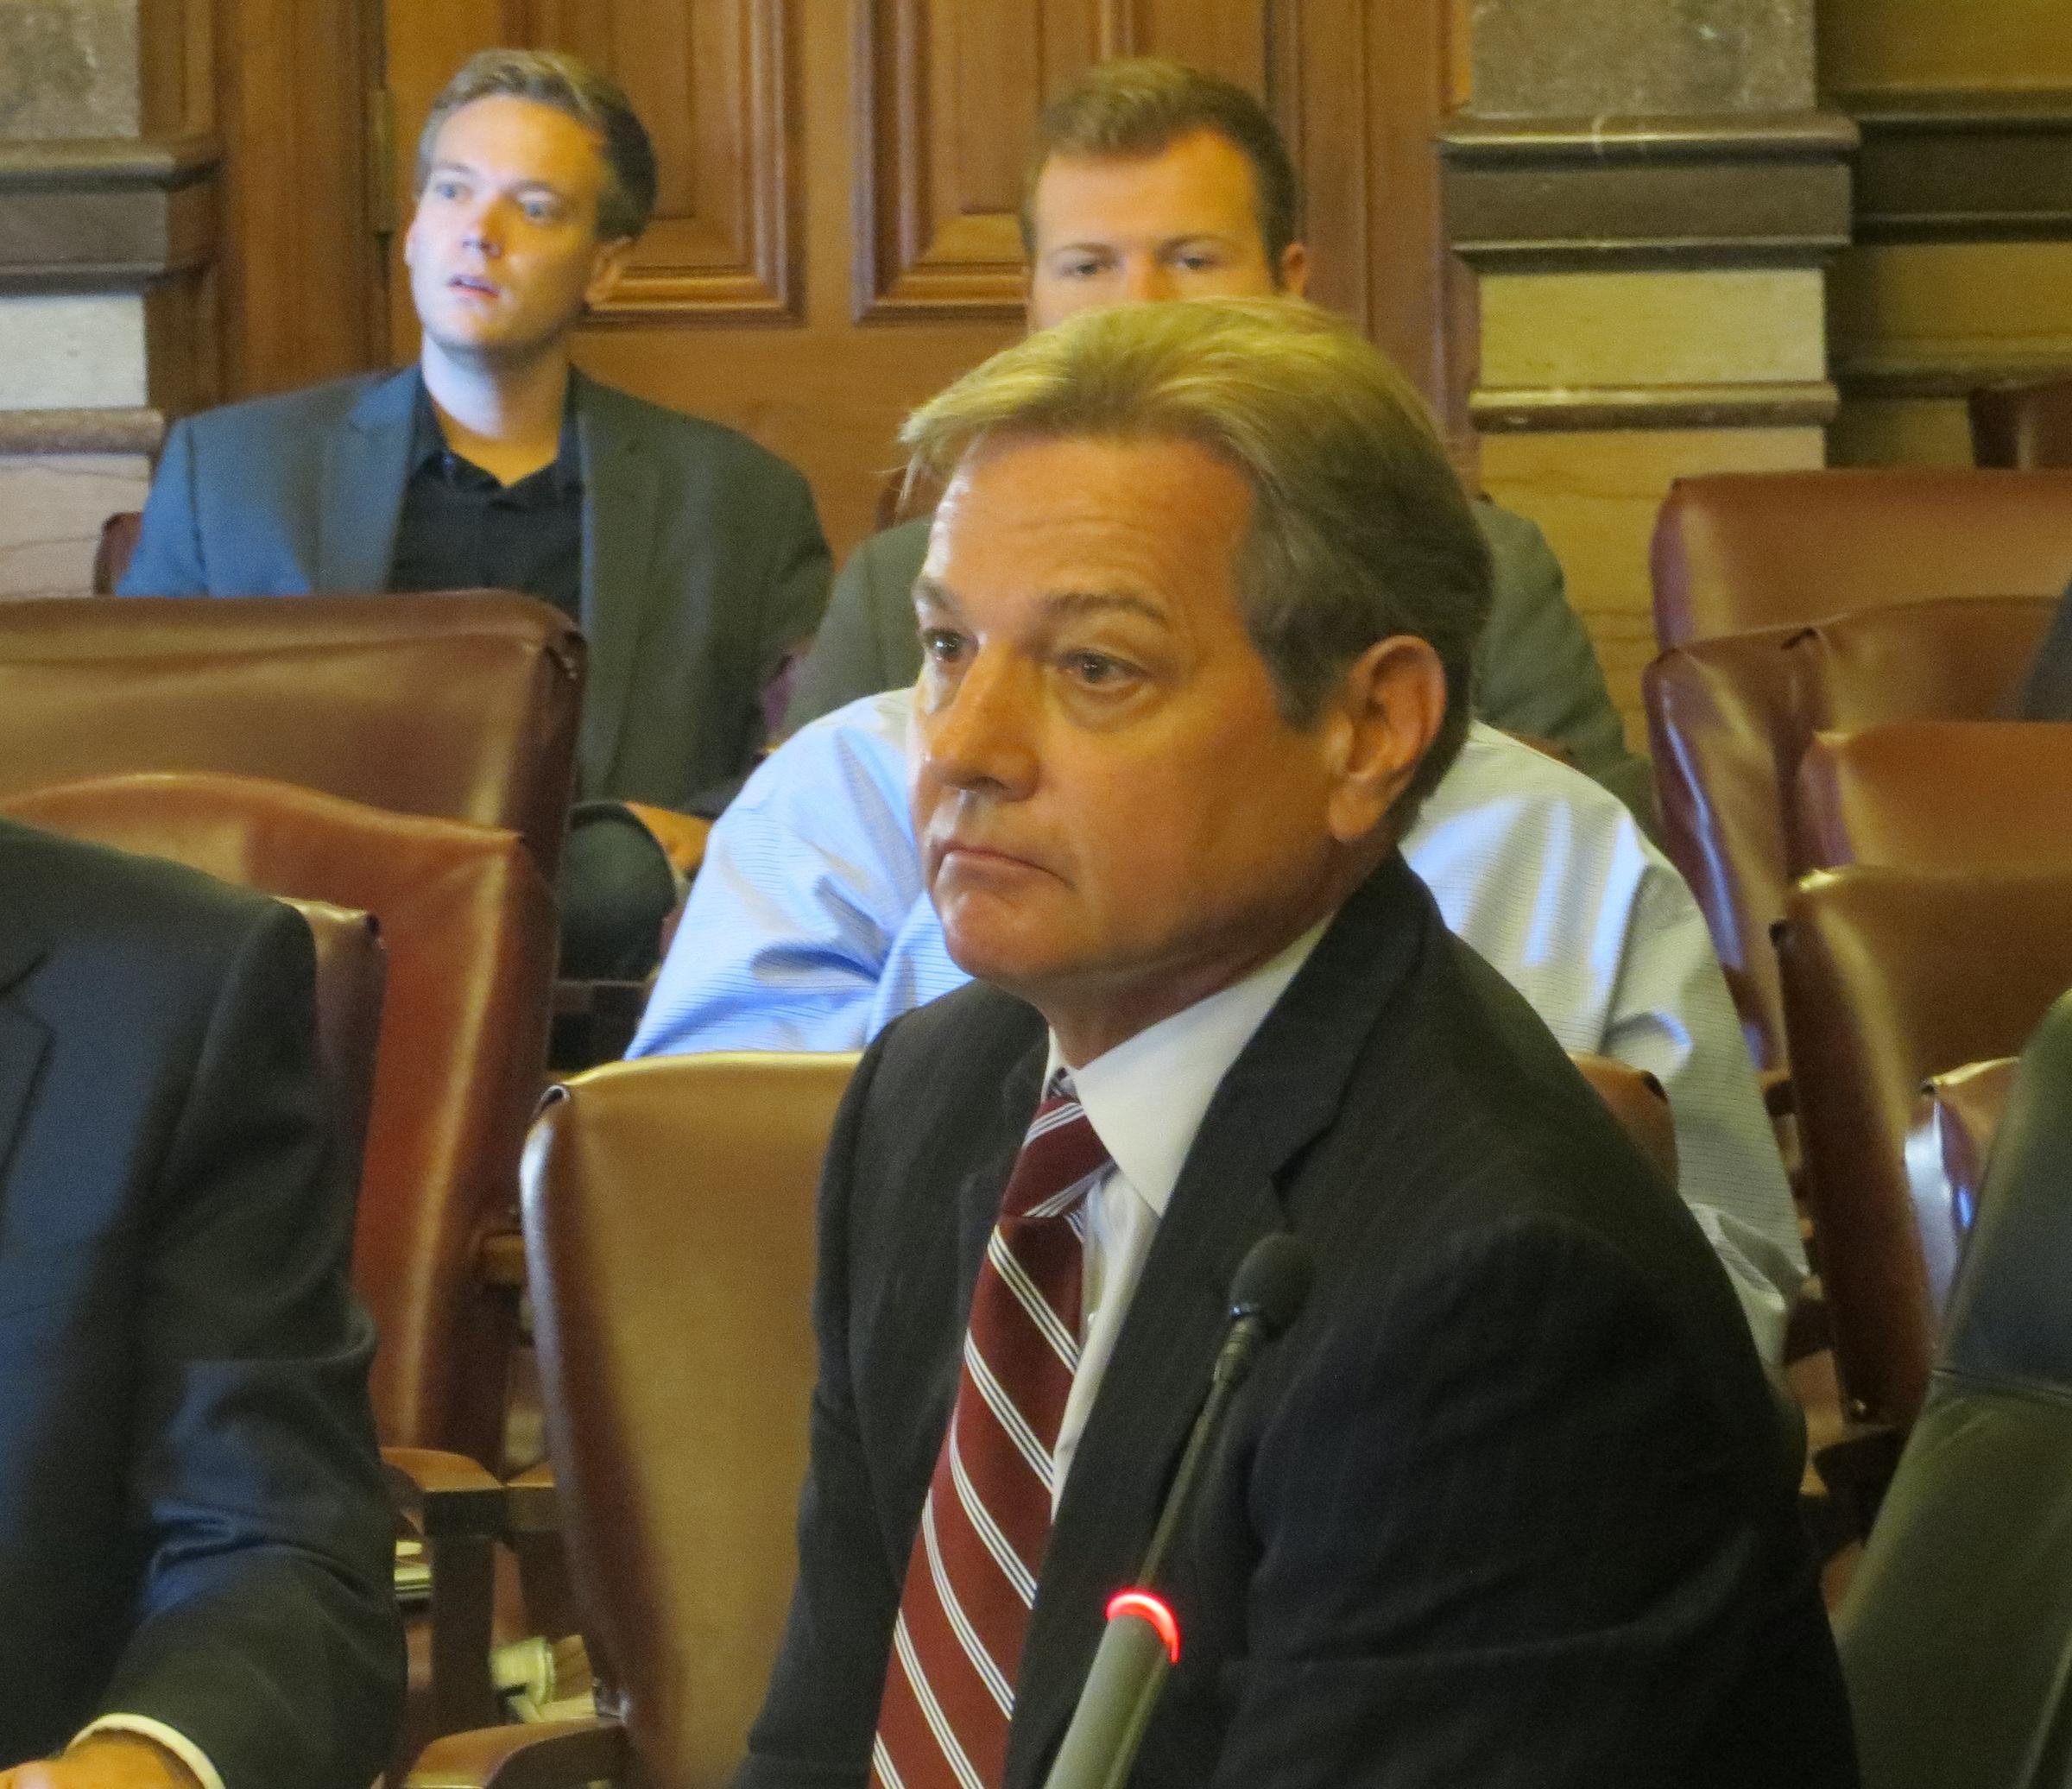 Union Lawyer Warns of Lawsuits on Overtime Pay   Iowa ...